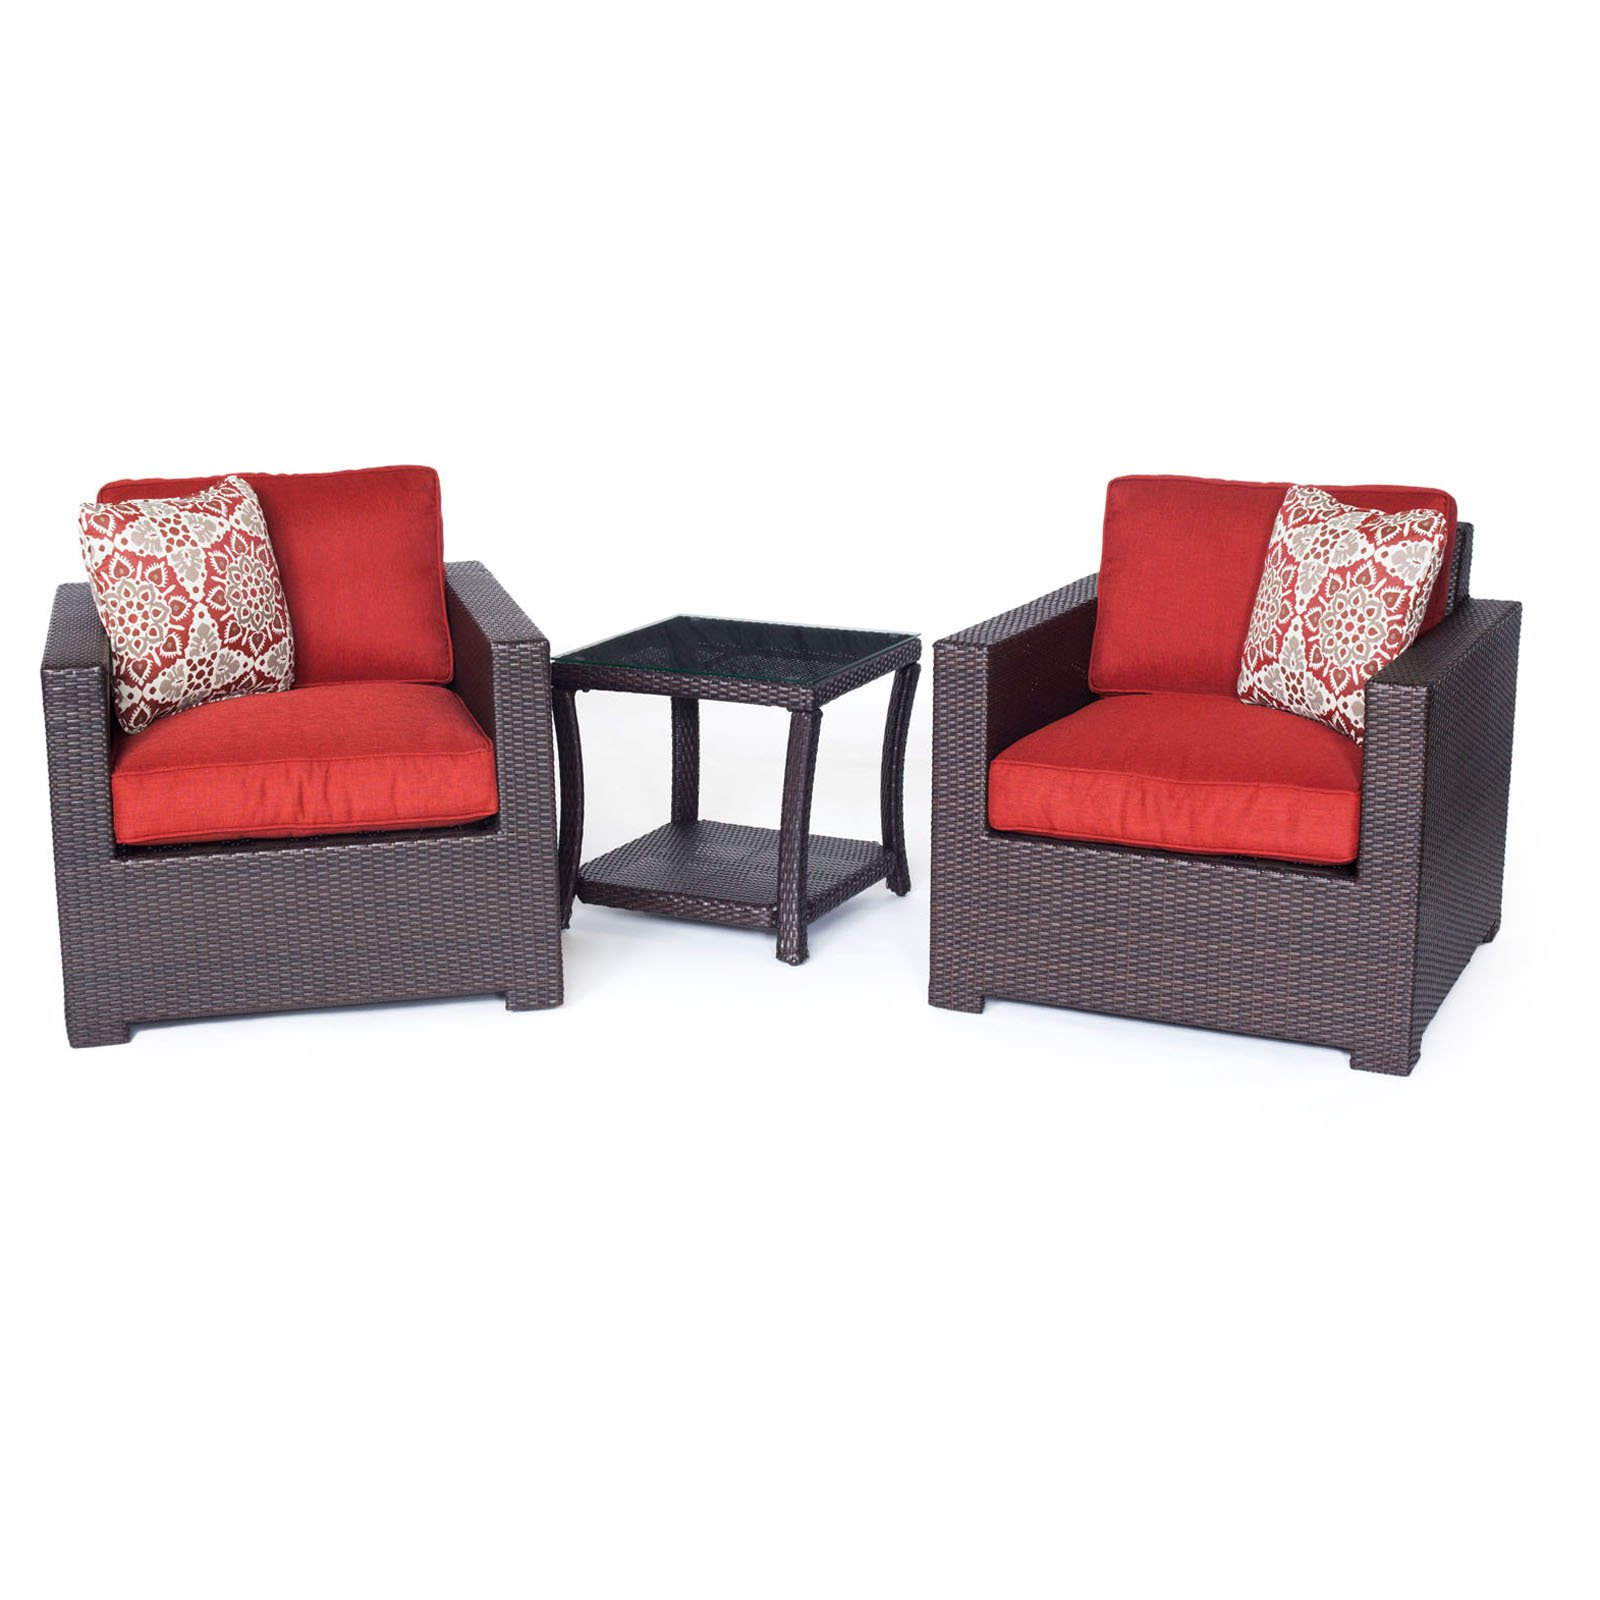 Hanover Outdoor Metropolitan 3-Piece Chat Set